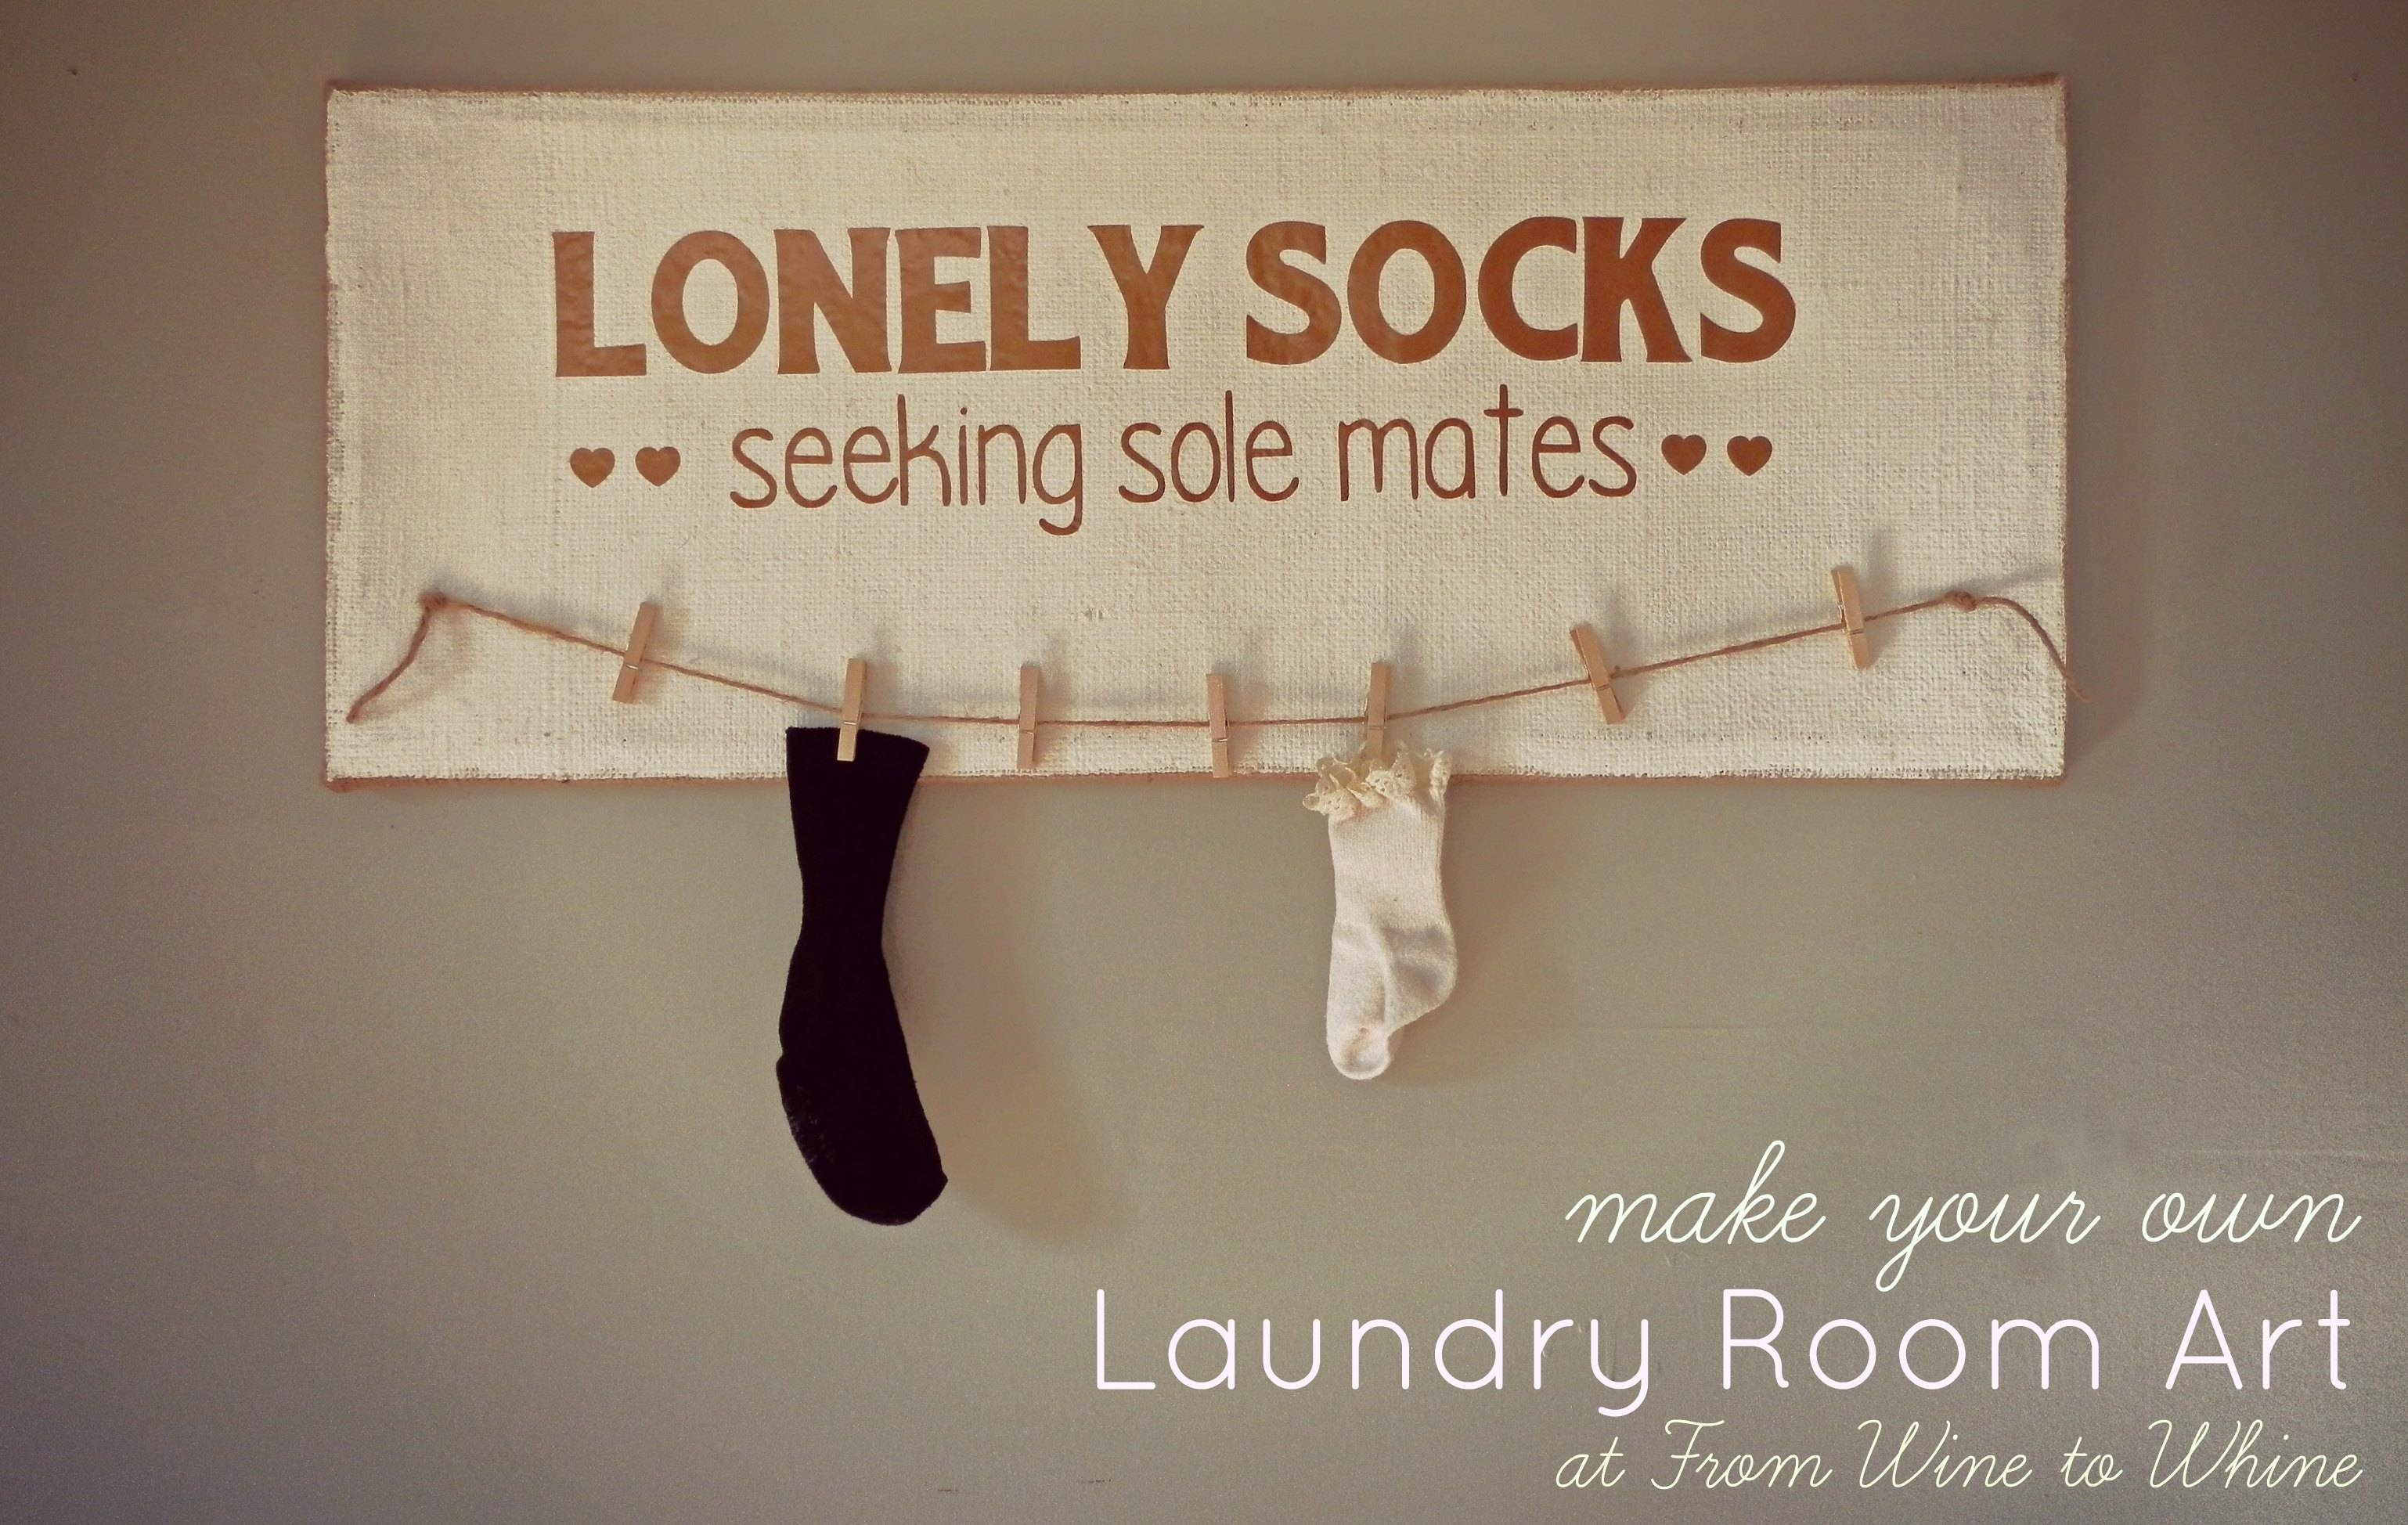 Wall Art For Laundry Room – Creeksideyarns With Regard To Most Recent Laundry Room Wall Art (View 29 of 30)